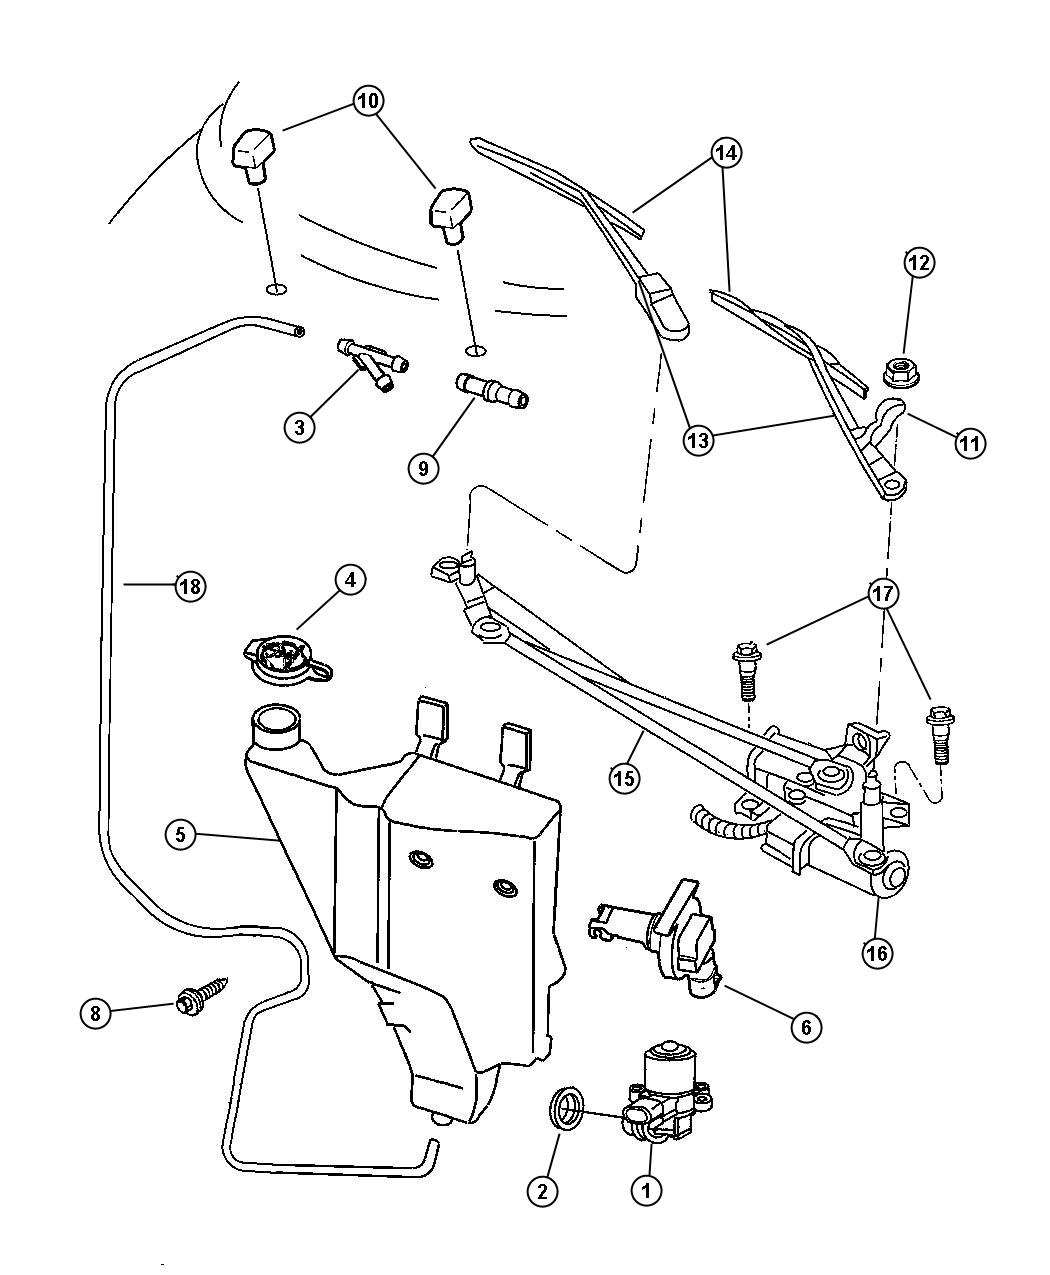 Chrysler Sebring Jxi Convertible Windshield Wiper And Washer System